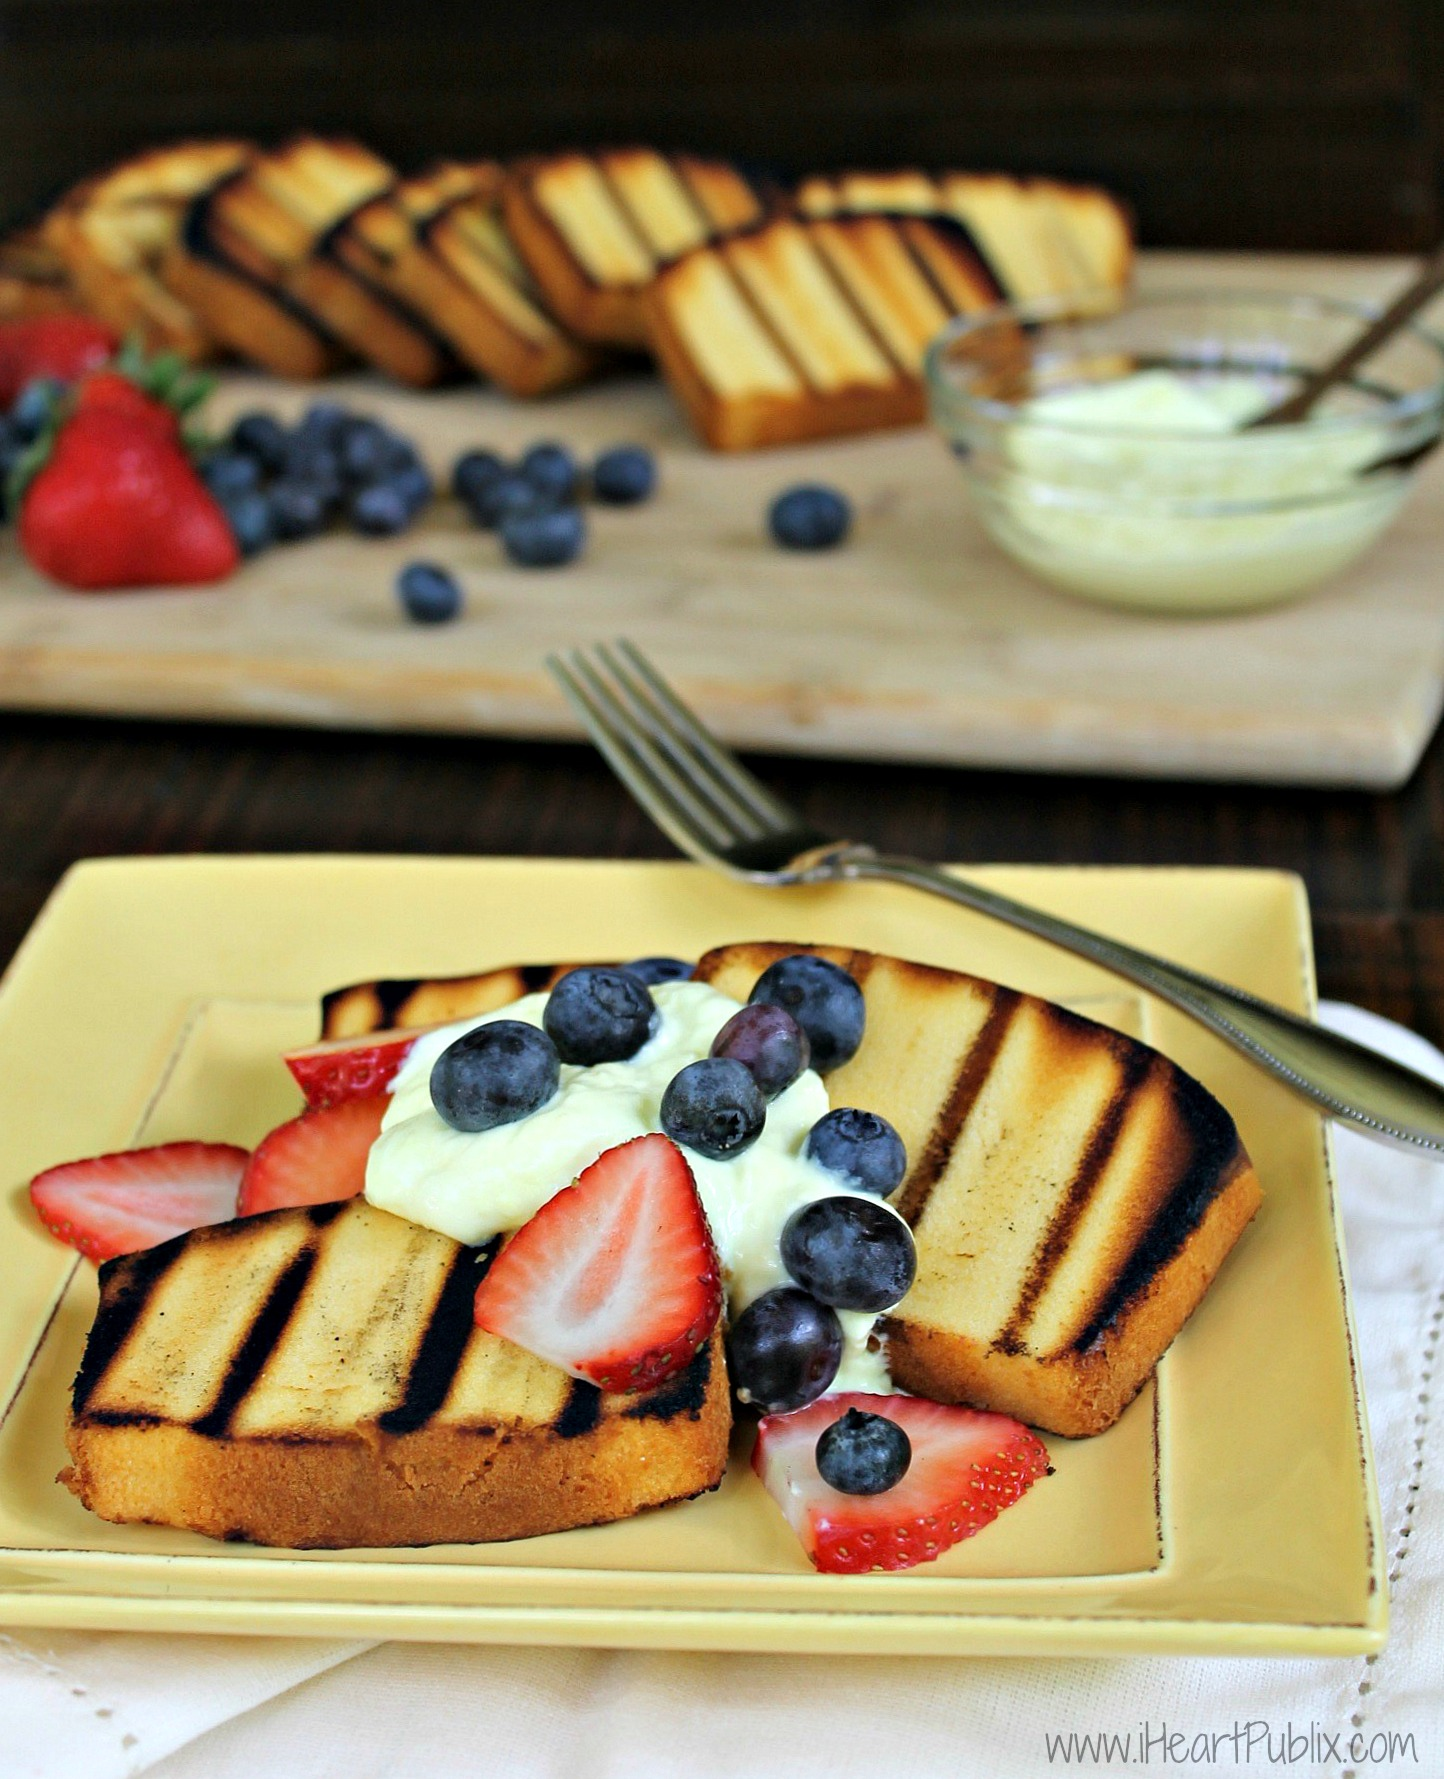 Sara Lee's Grilled Pound Cake and Mixed Berries